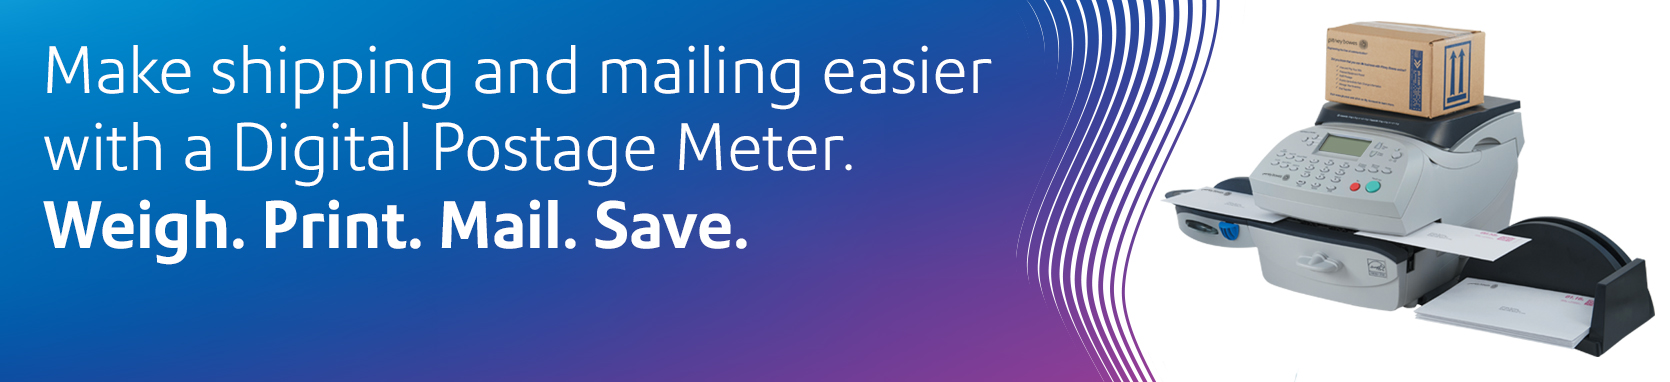 Make shipping and mailing easier with a Digital Postage Meter. Weigh. Print. Mail. Save.